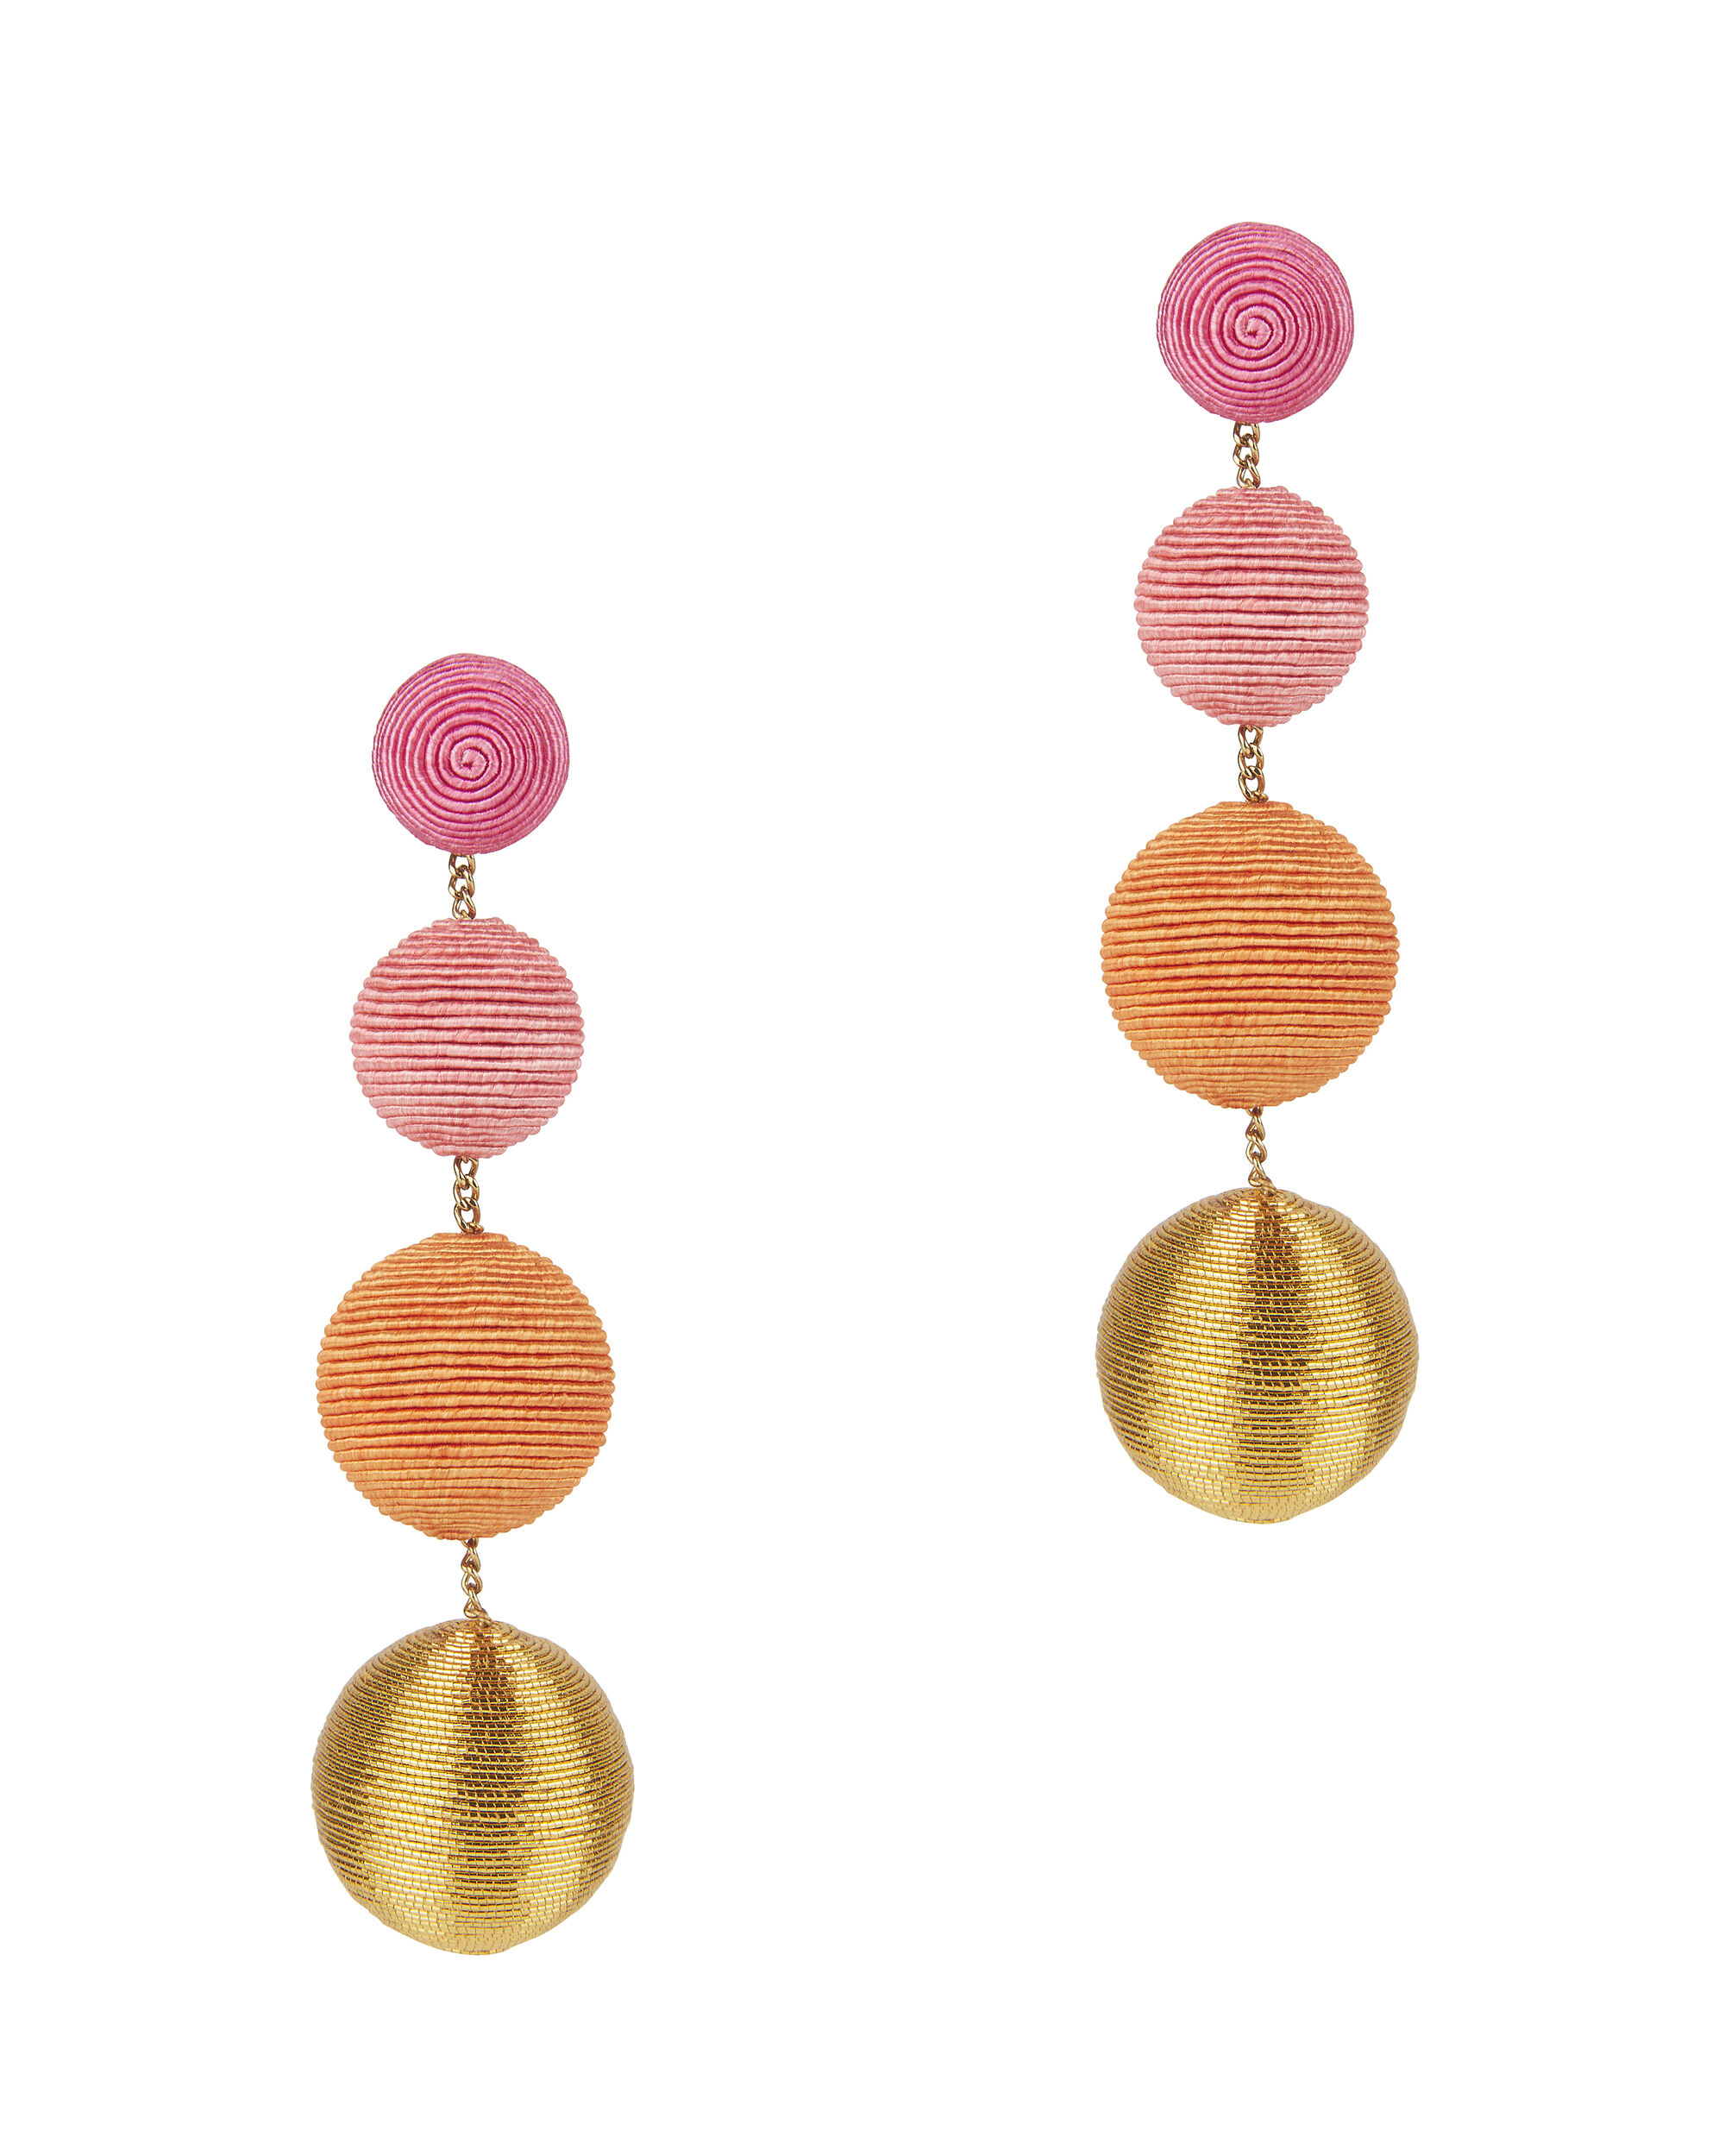 Silk Metallic Cord Gumball Drop Earrings, PINK, hi-res